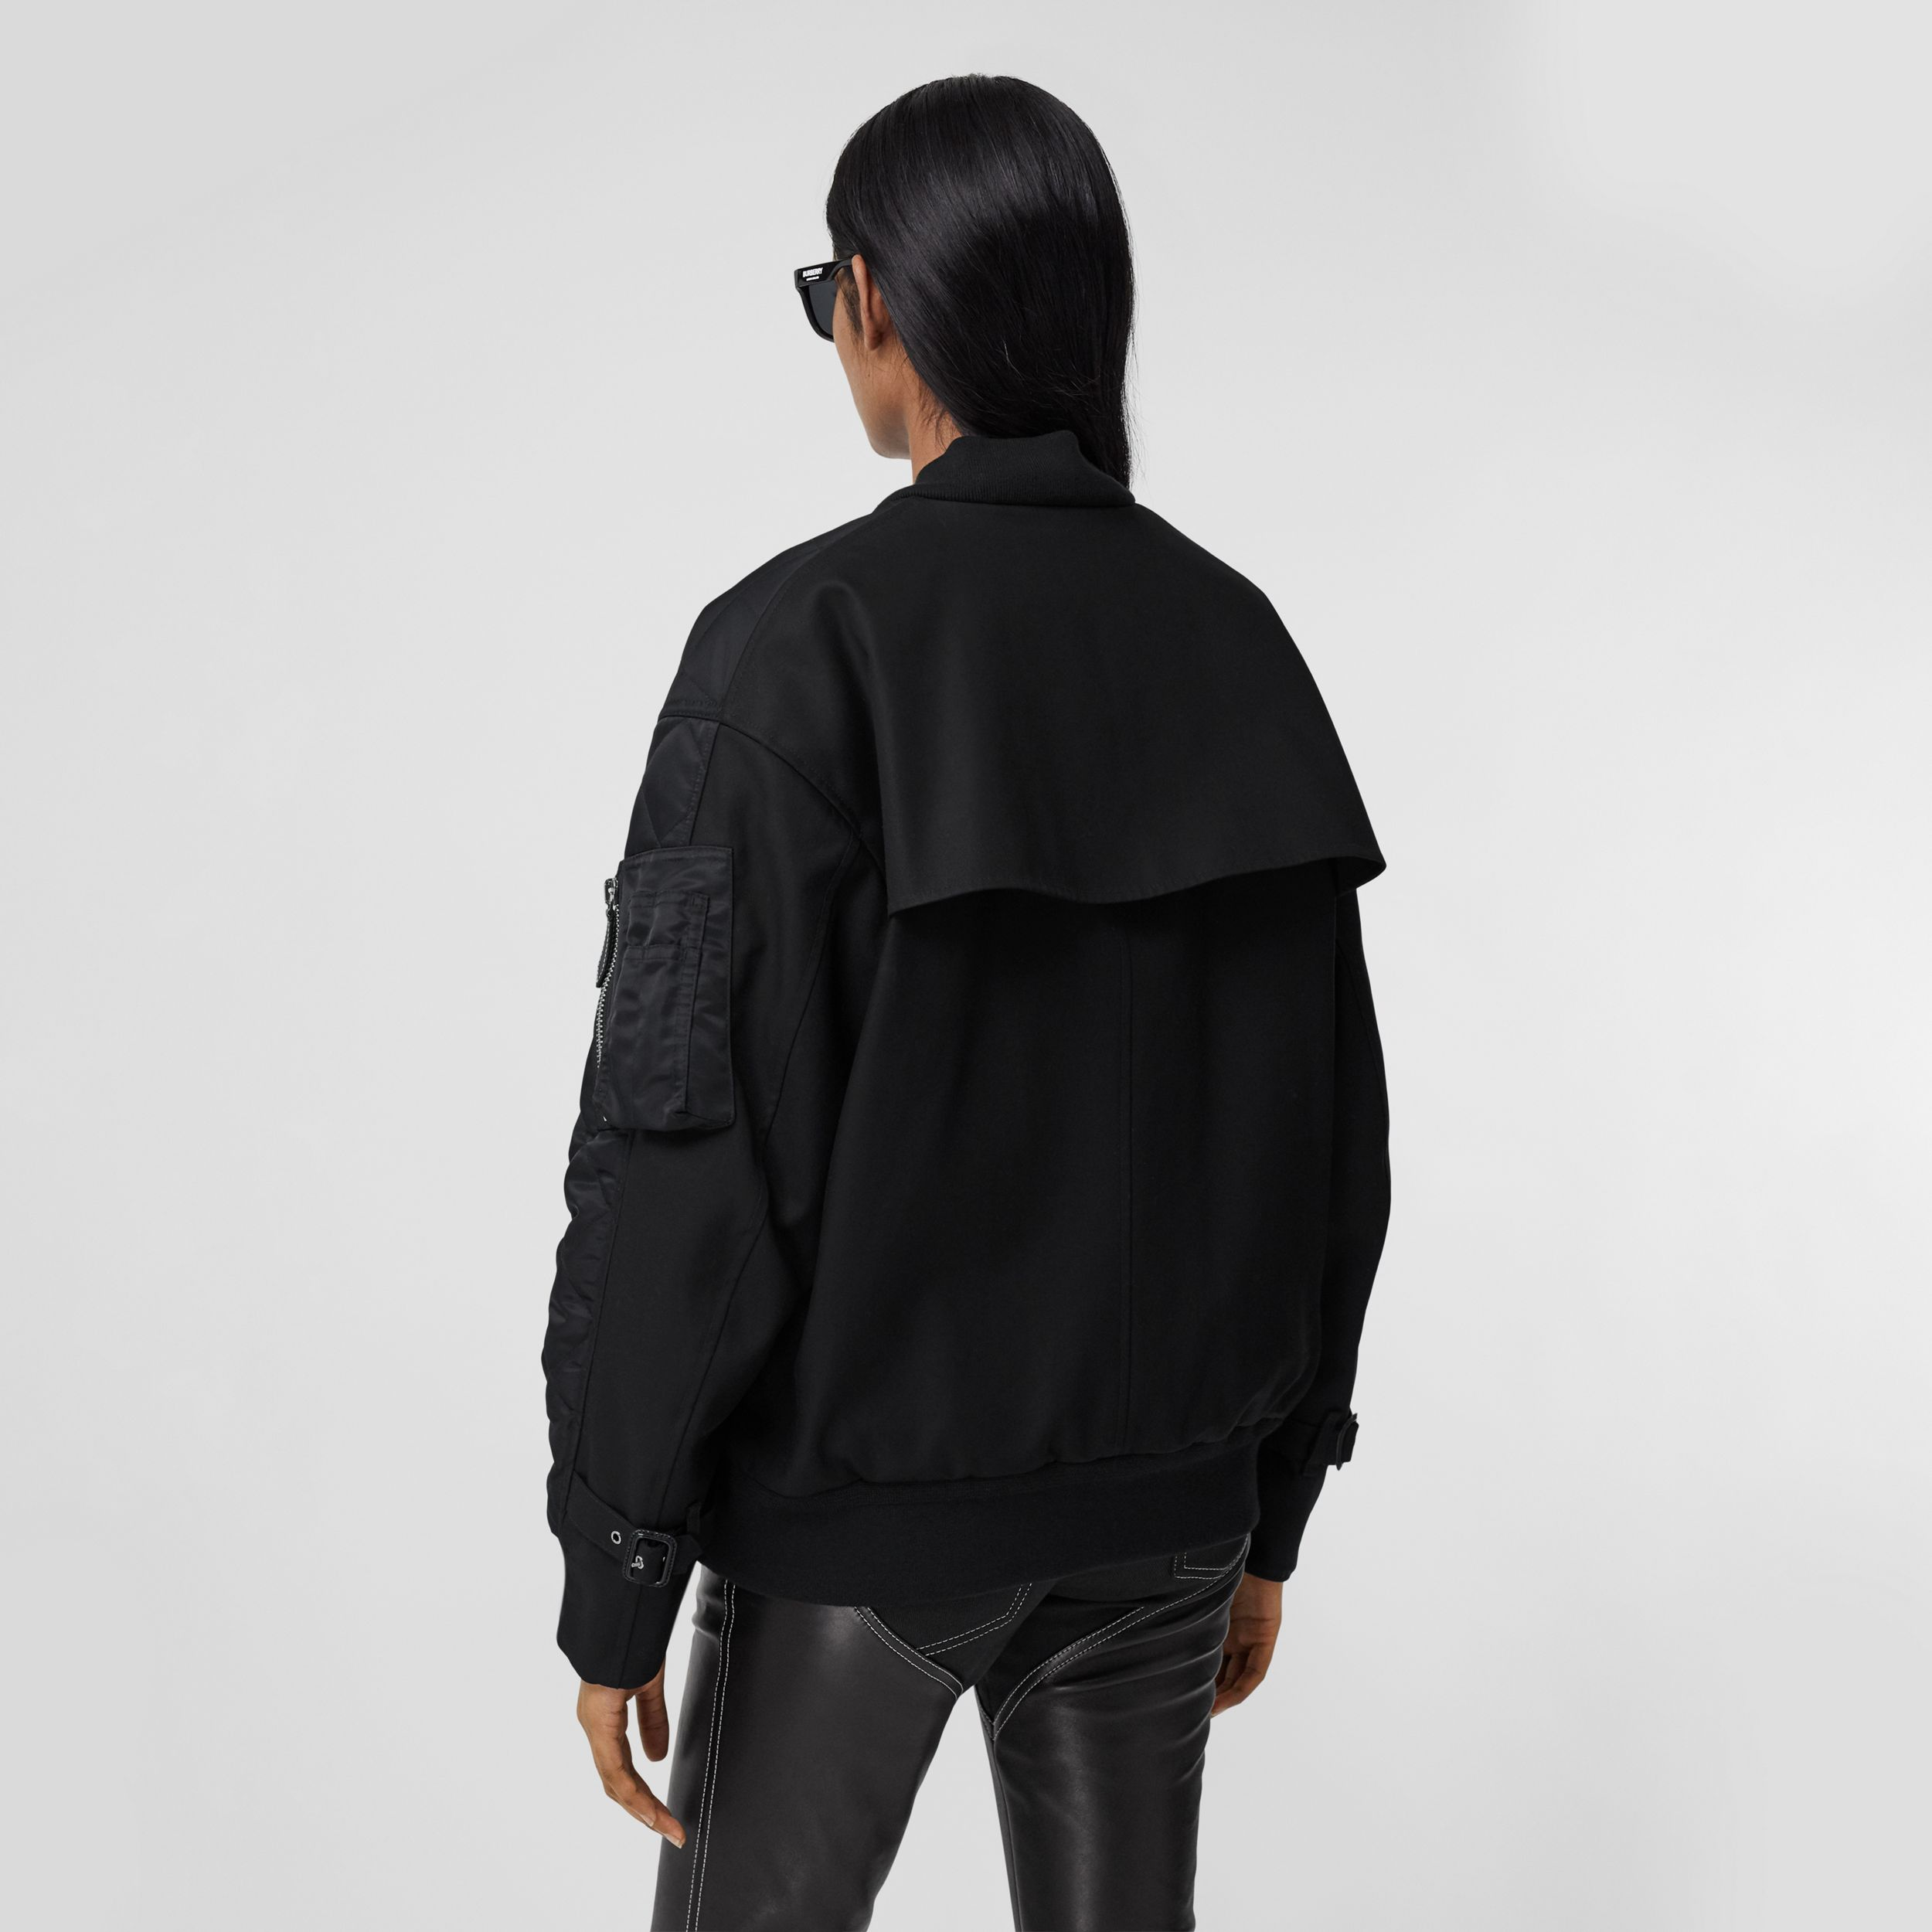 Diamond Quilted Nylon and Cotton Bomber Jacket in Black/black - Women | Burberry - 3